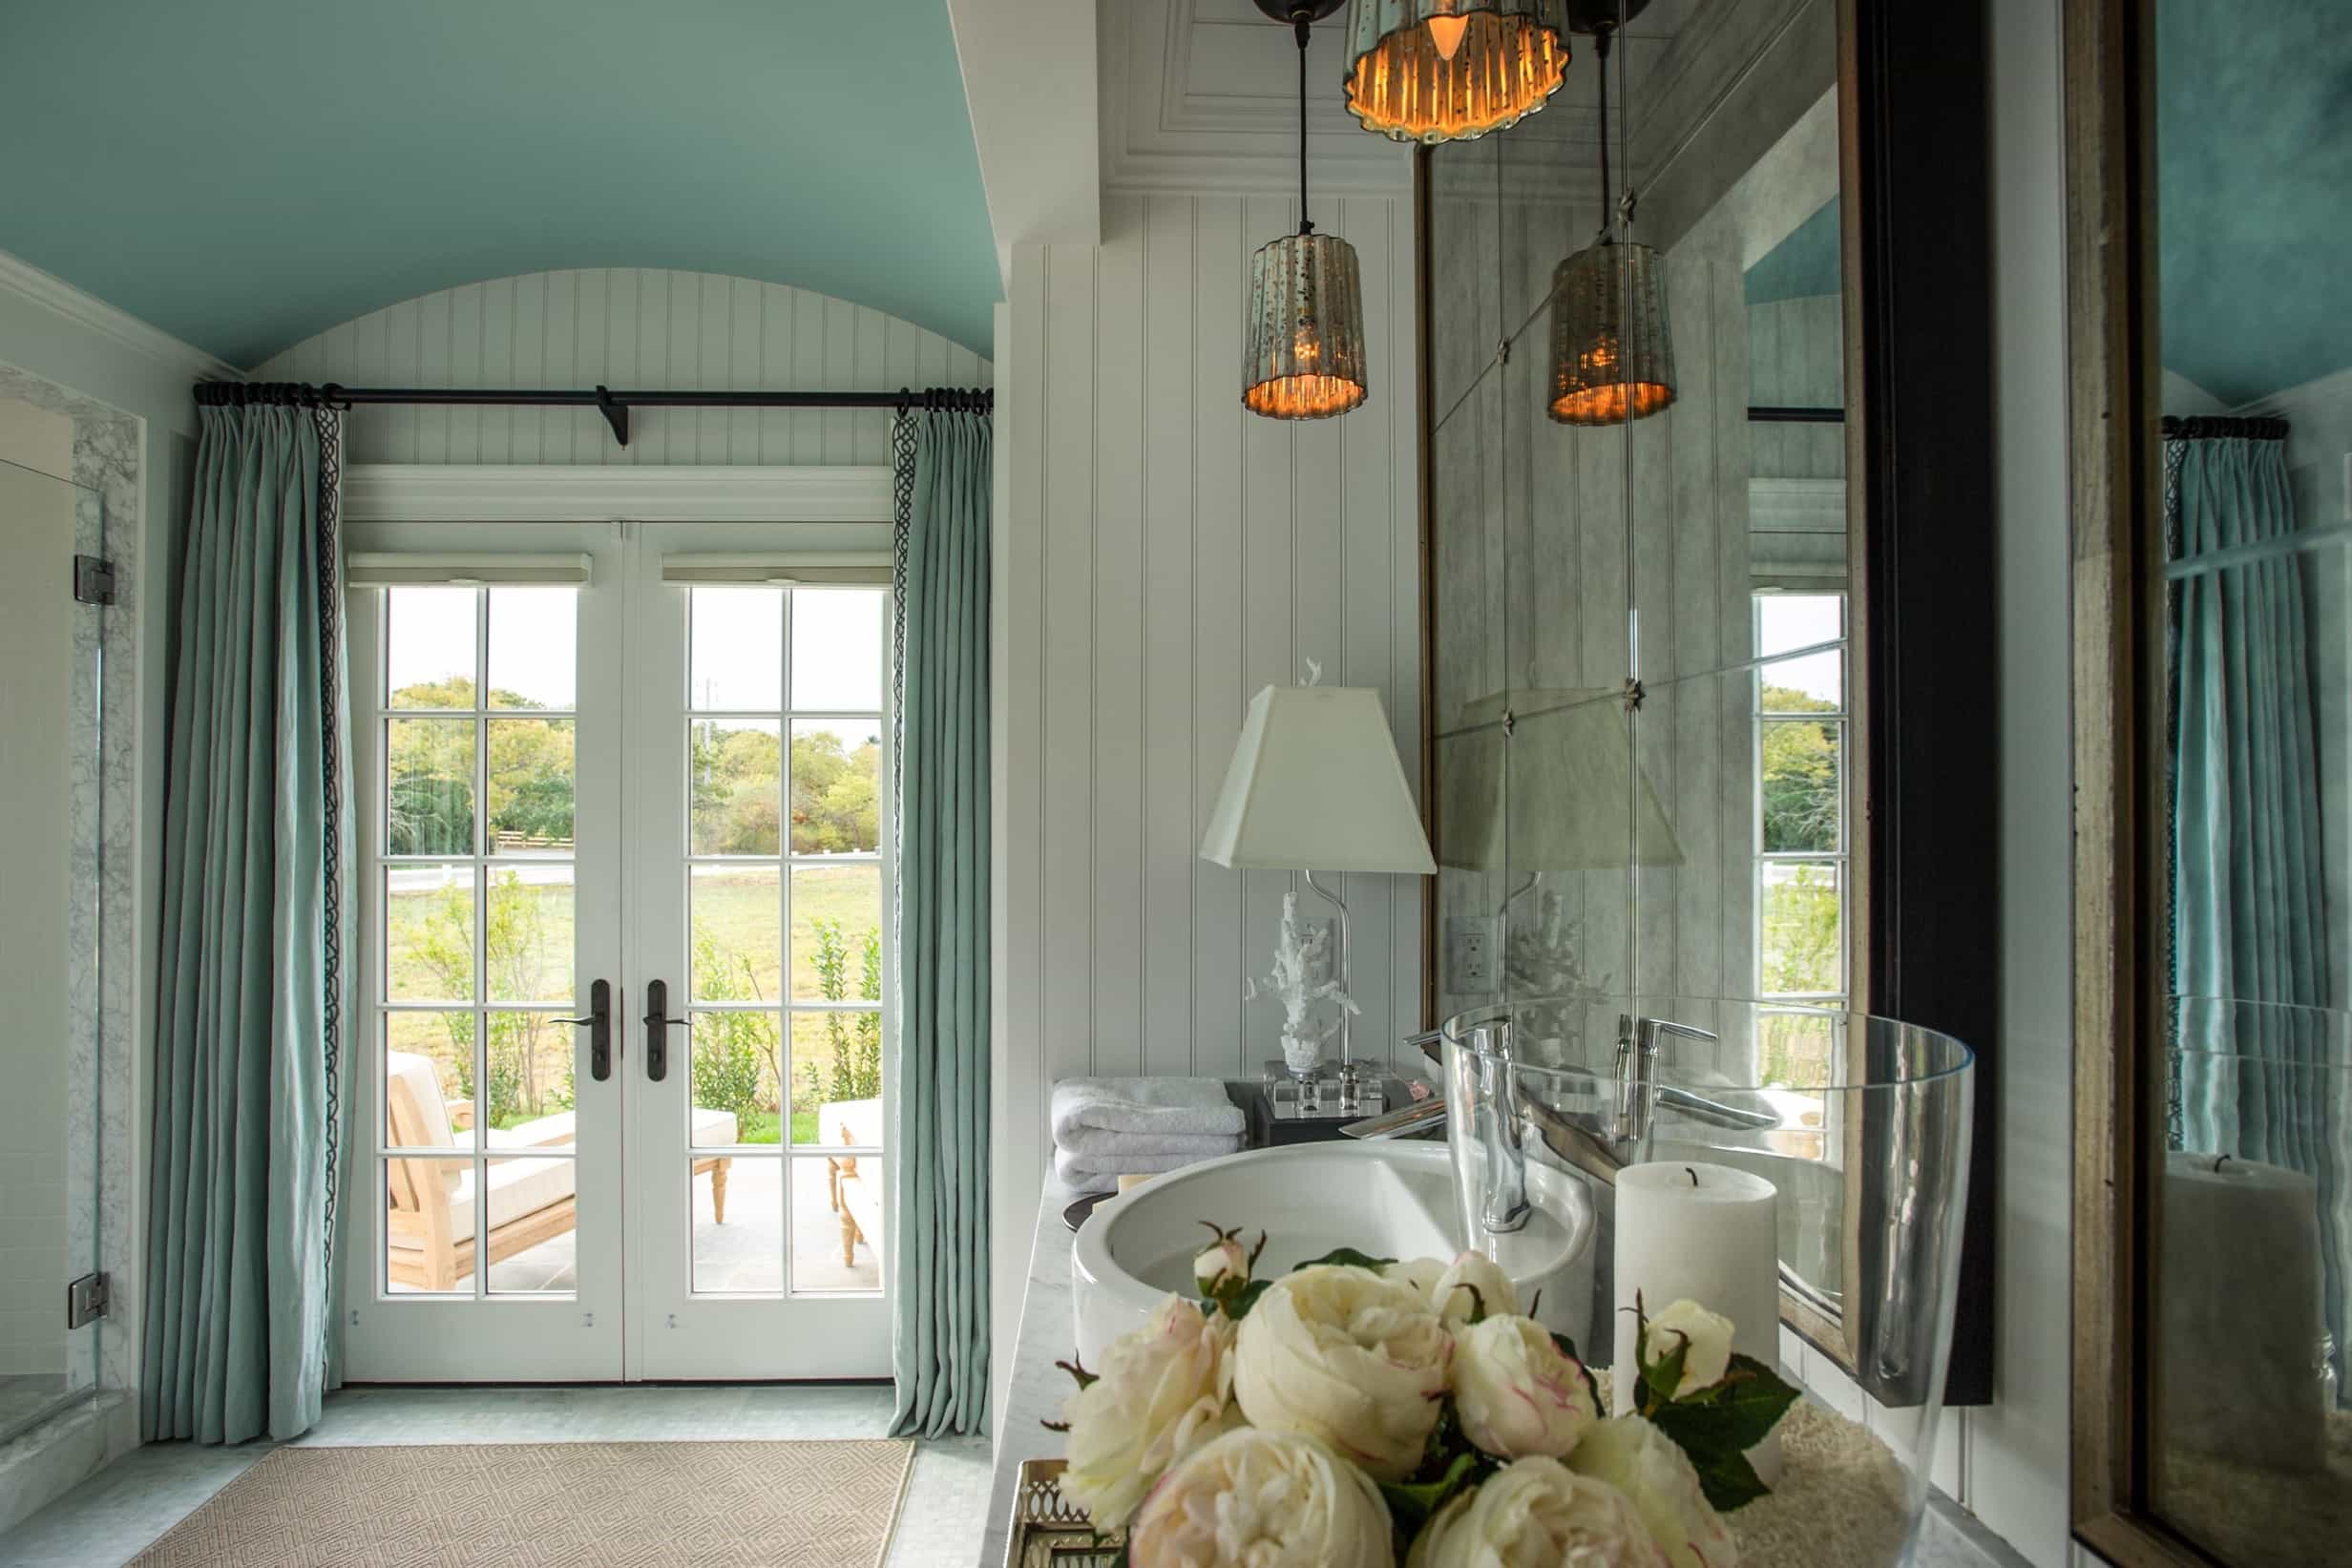 Featured Image of Classic Bathroom With Curtained French Doors To Patio